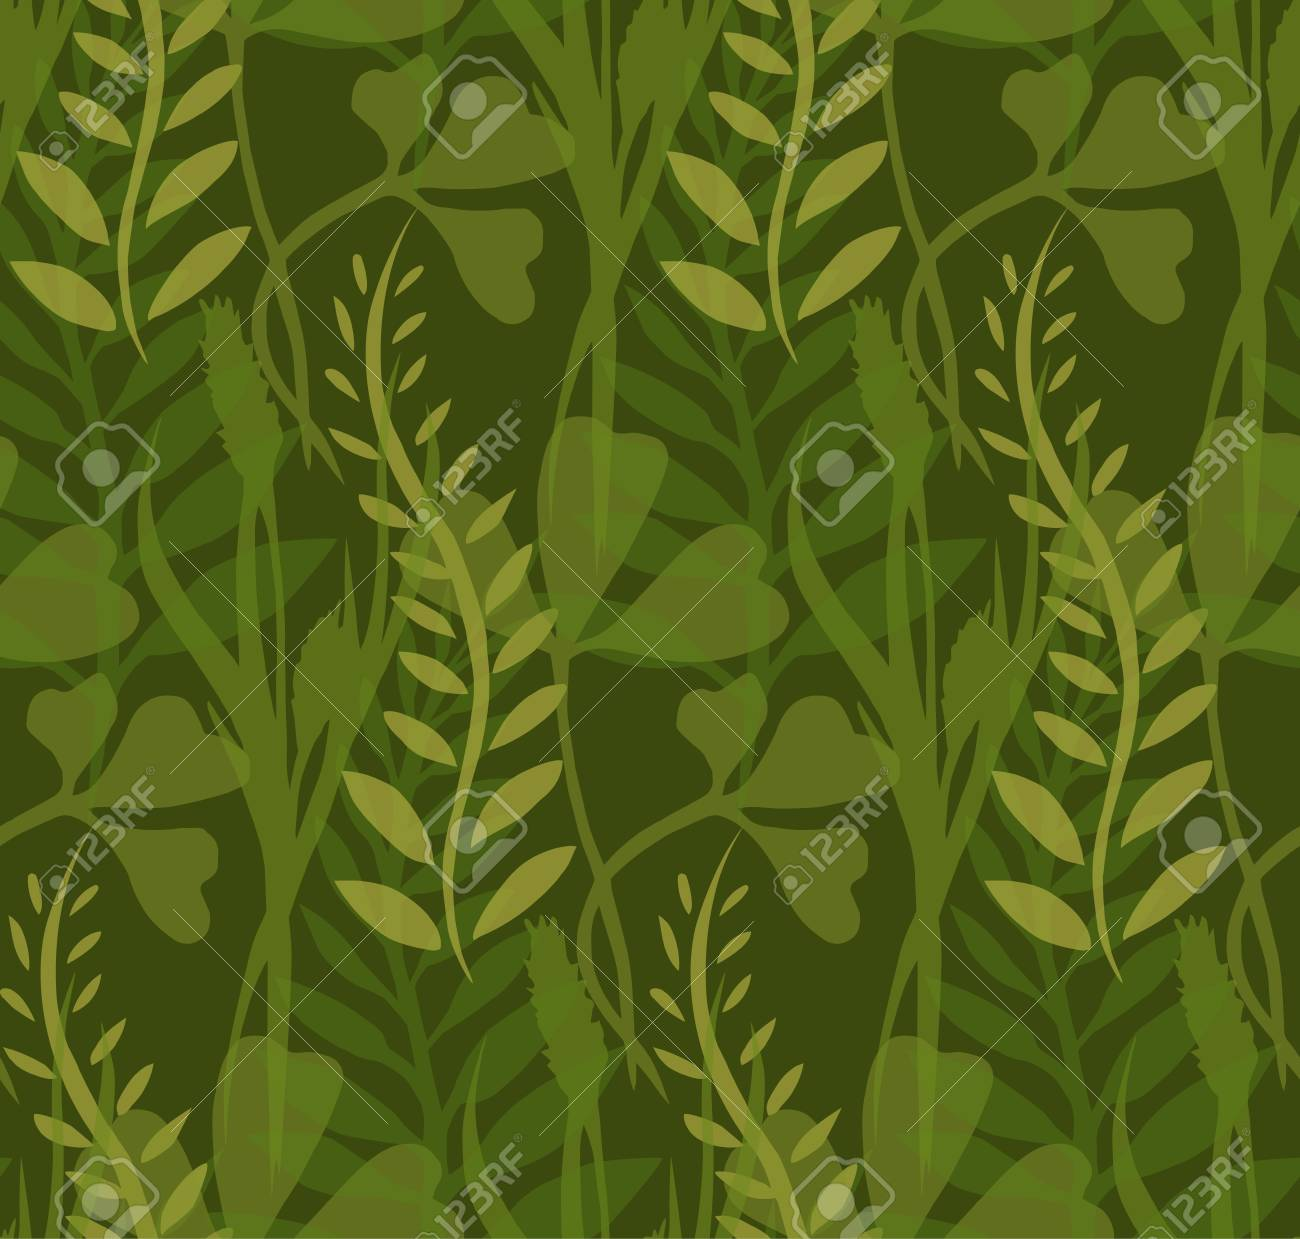 Seamless texture with transparent plants and herbs for your creativity